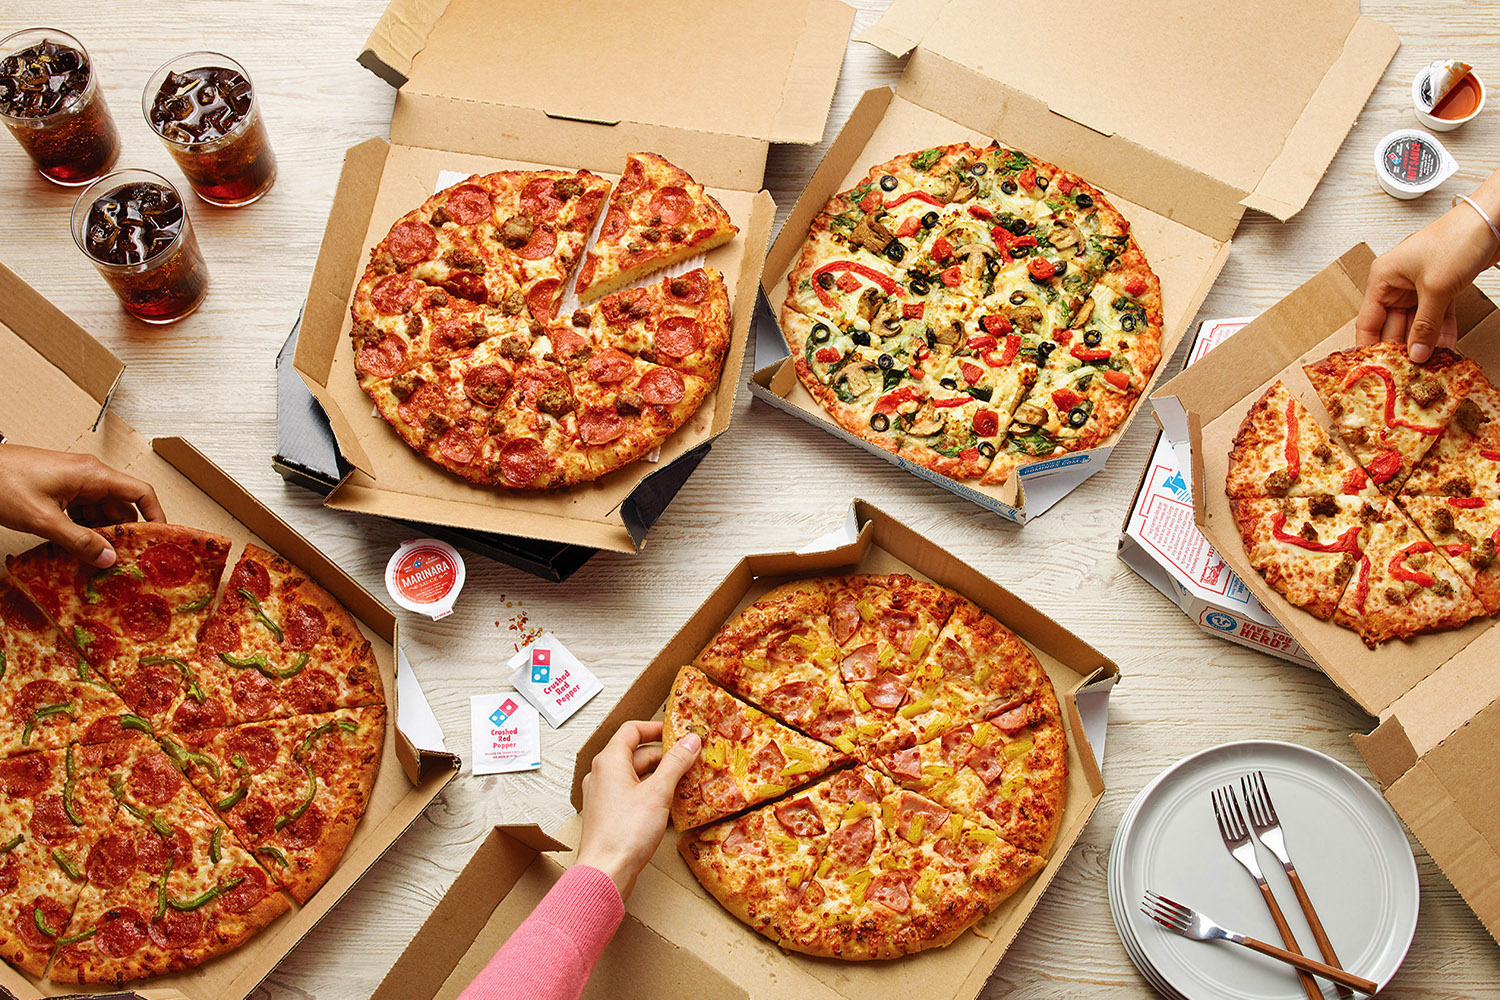 food delivery. pizza delivery, instant food, foodpanda delivery